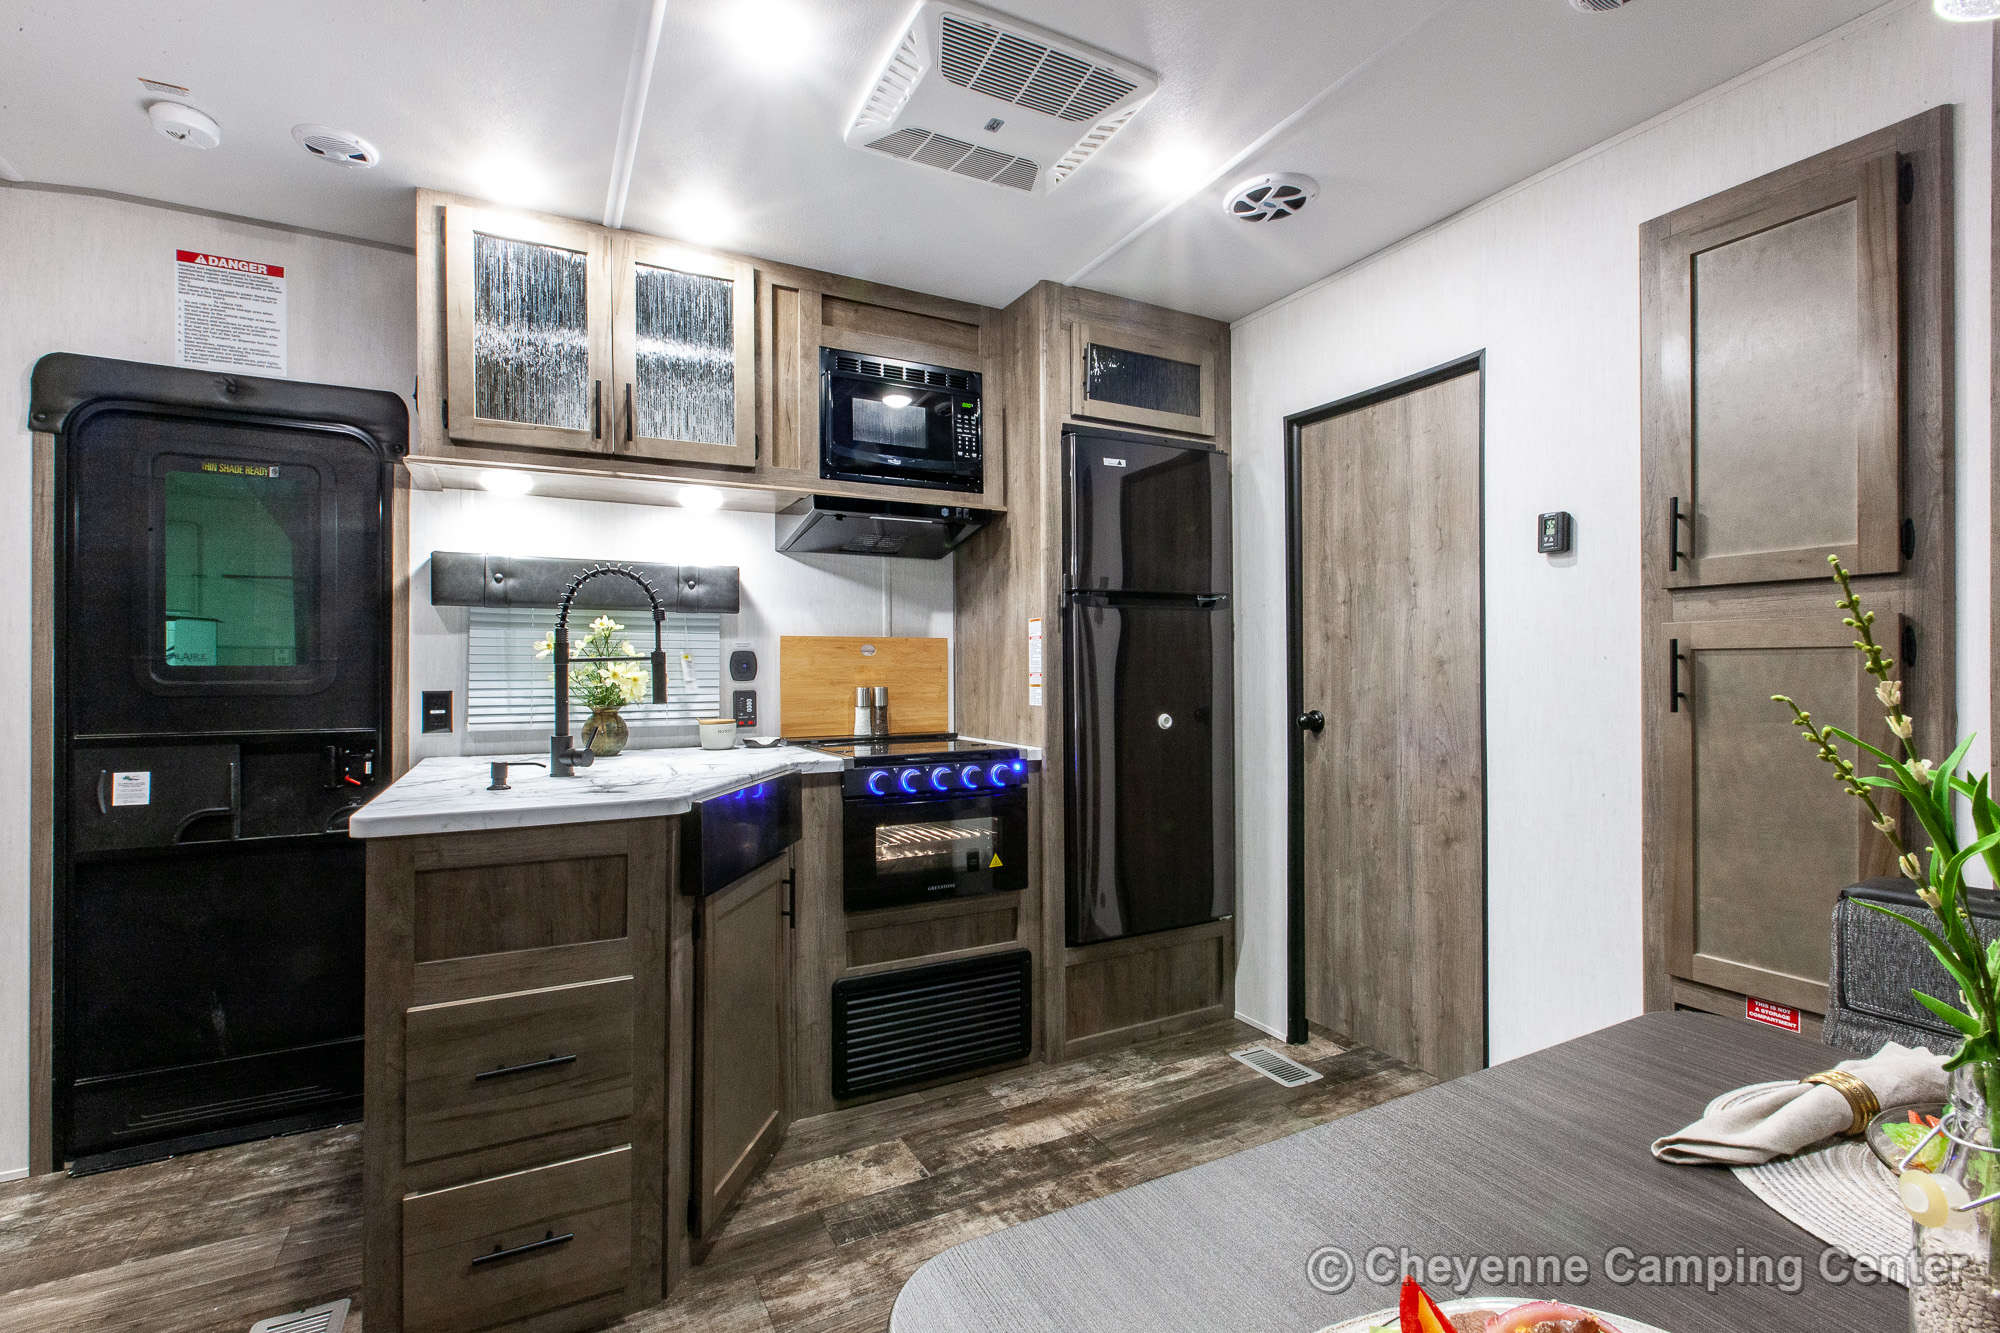 2022 Forest River Cherokee Wolf Pack 25PACK12 Bunkhouse Toy Hauler Travel Trailer Interior Image